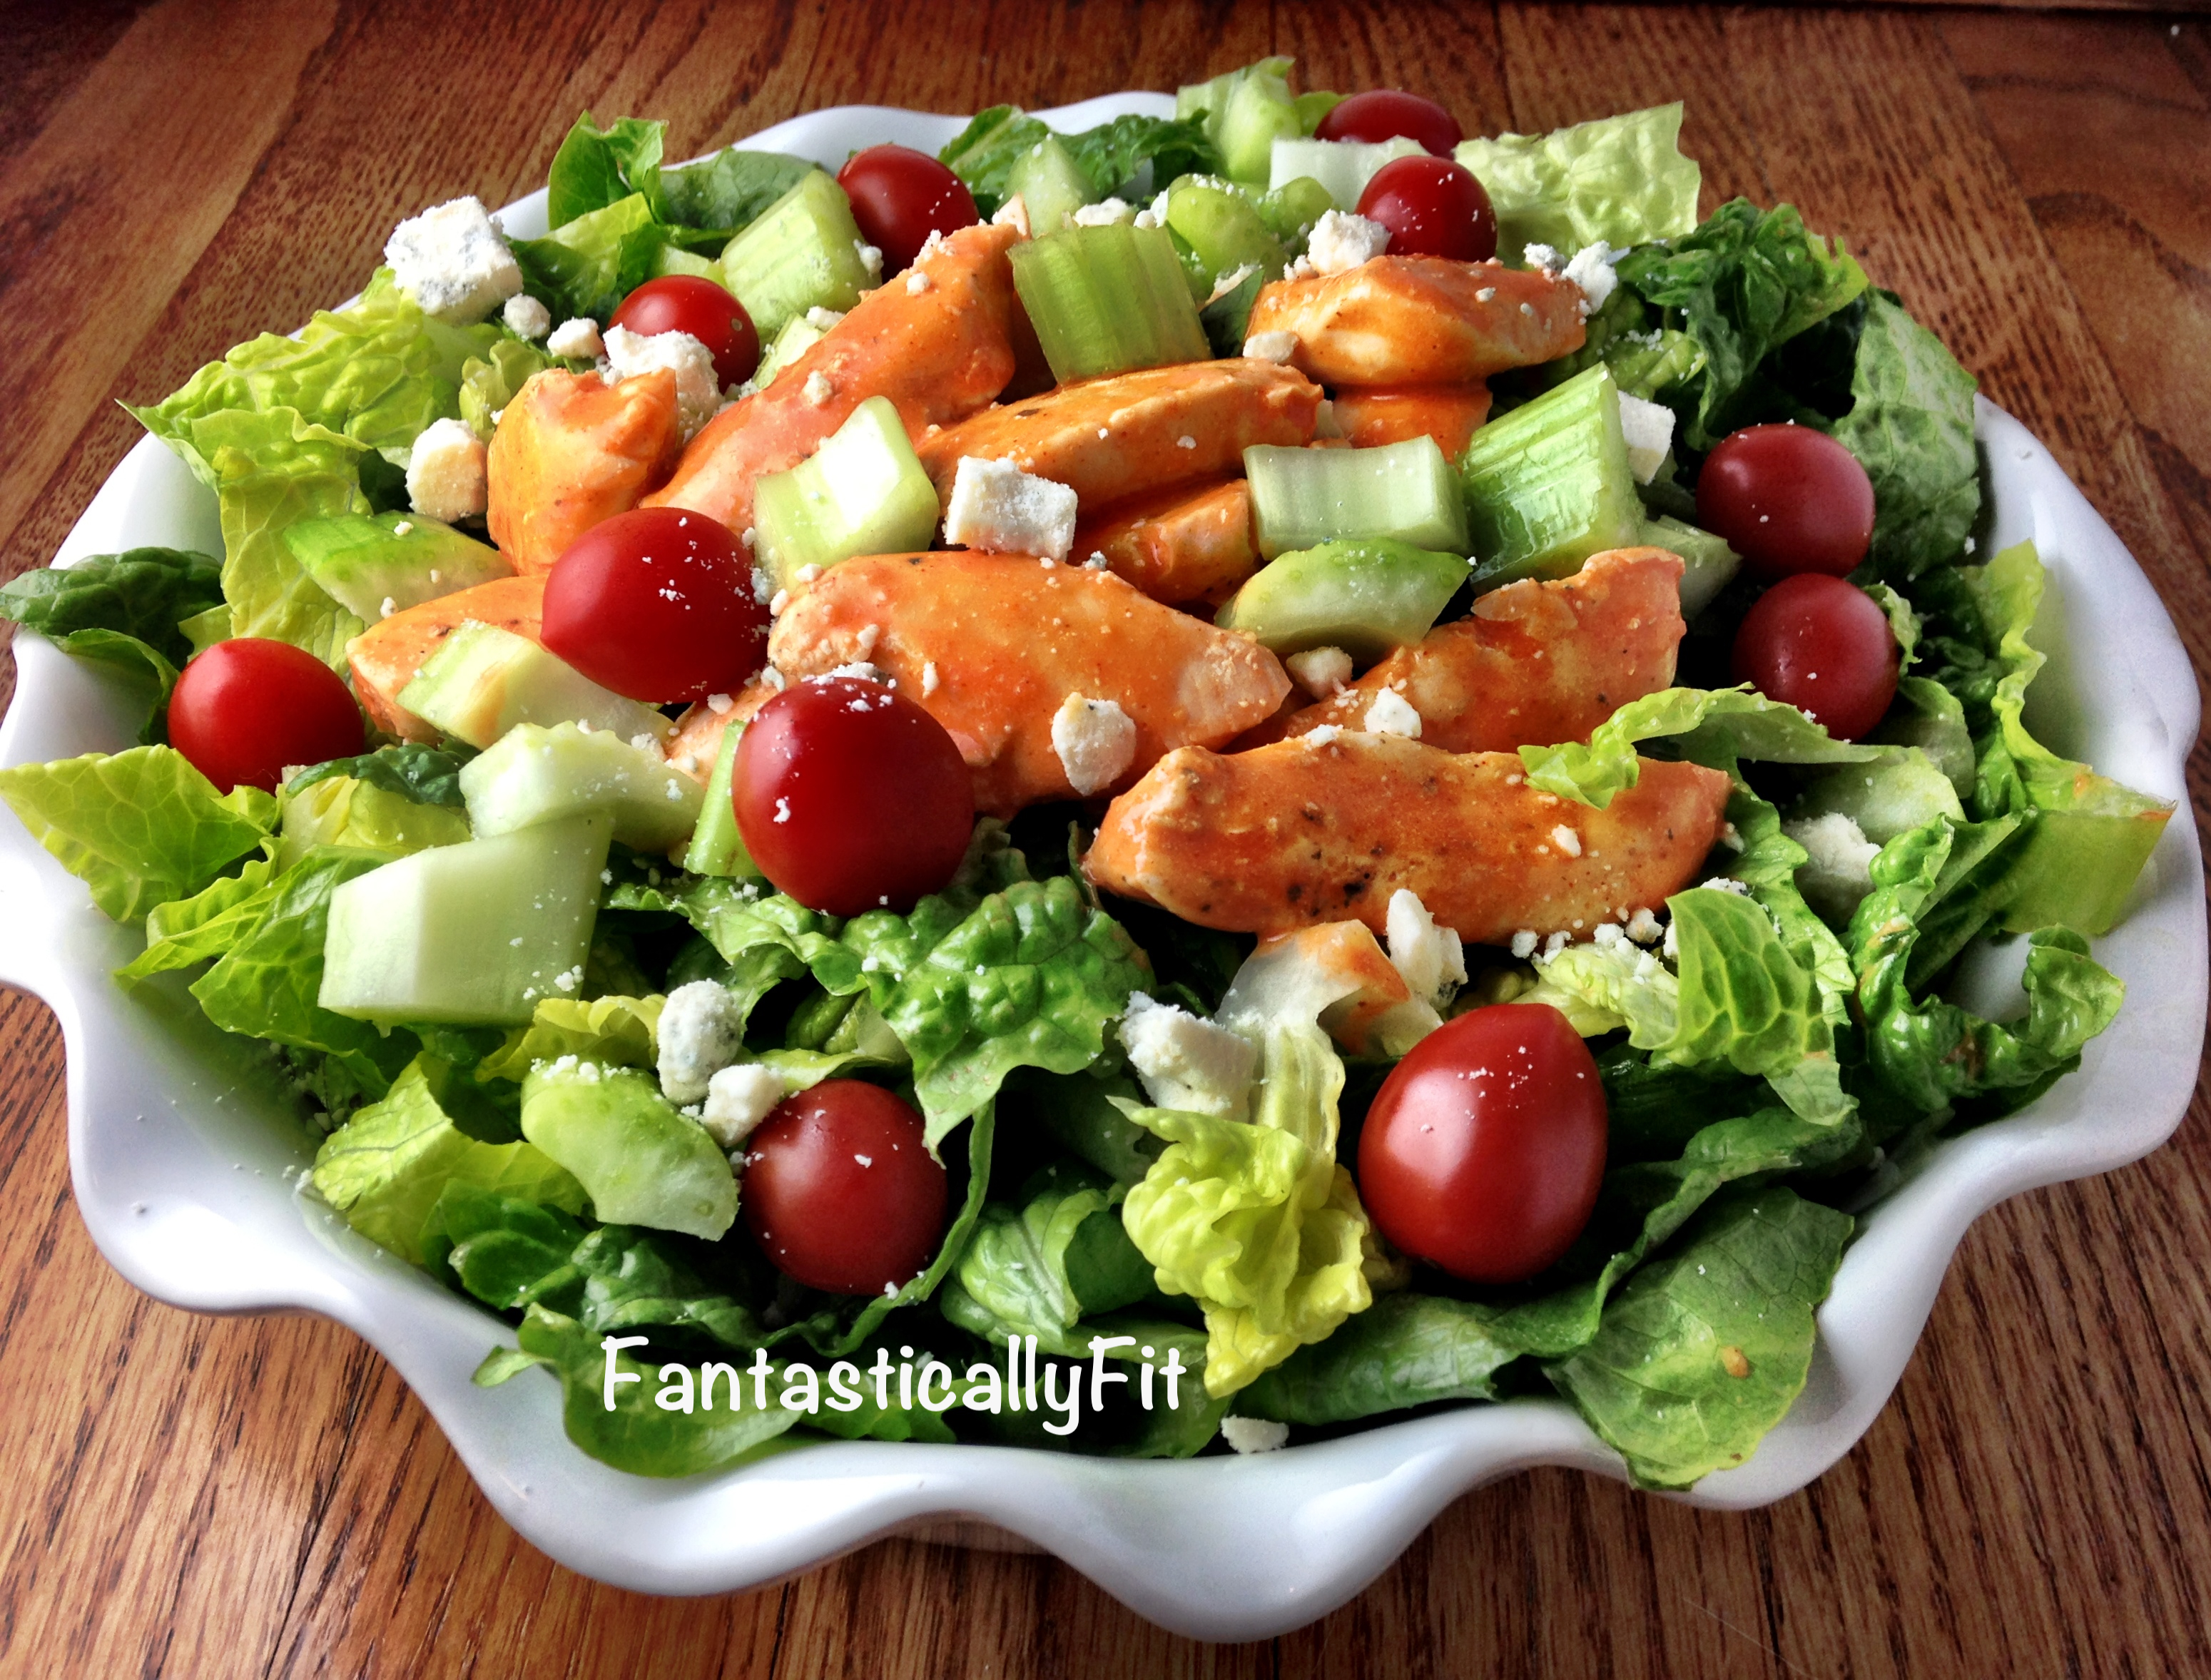 Fantastically Fit Buffalo Hot Wing Chicken Salad